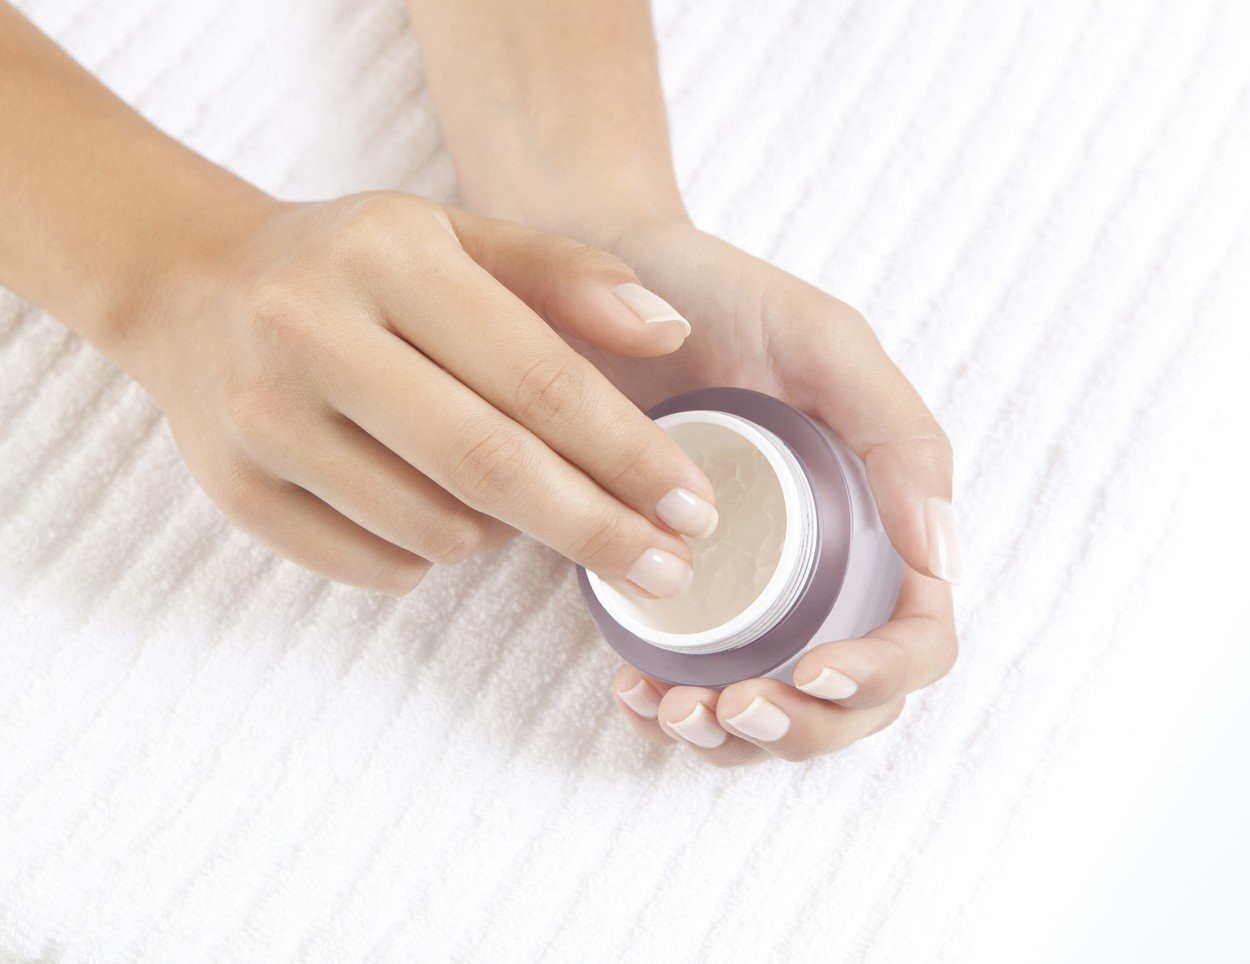 woman's hands holding a nourishing cream for face care, Image: 260293876, License: Royalty-free, Restrictions: , Model Release: no, Credit line: Profimedia, Panthermedia